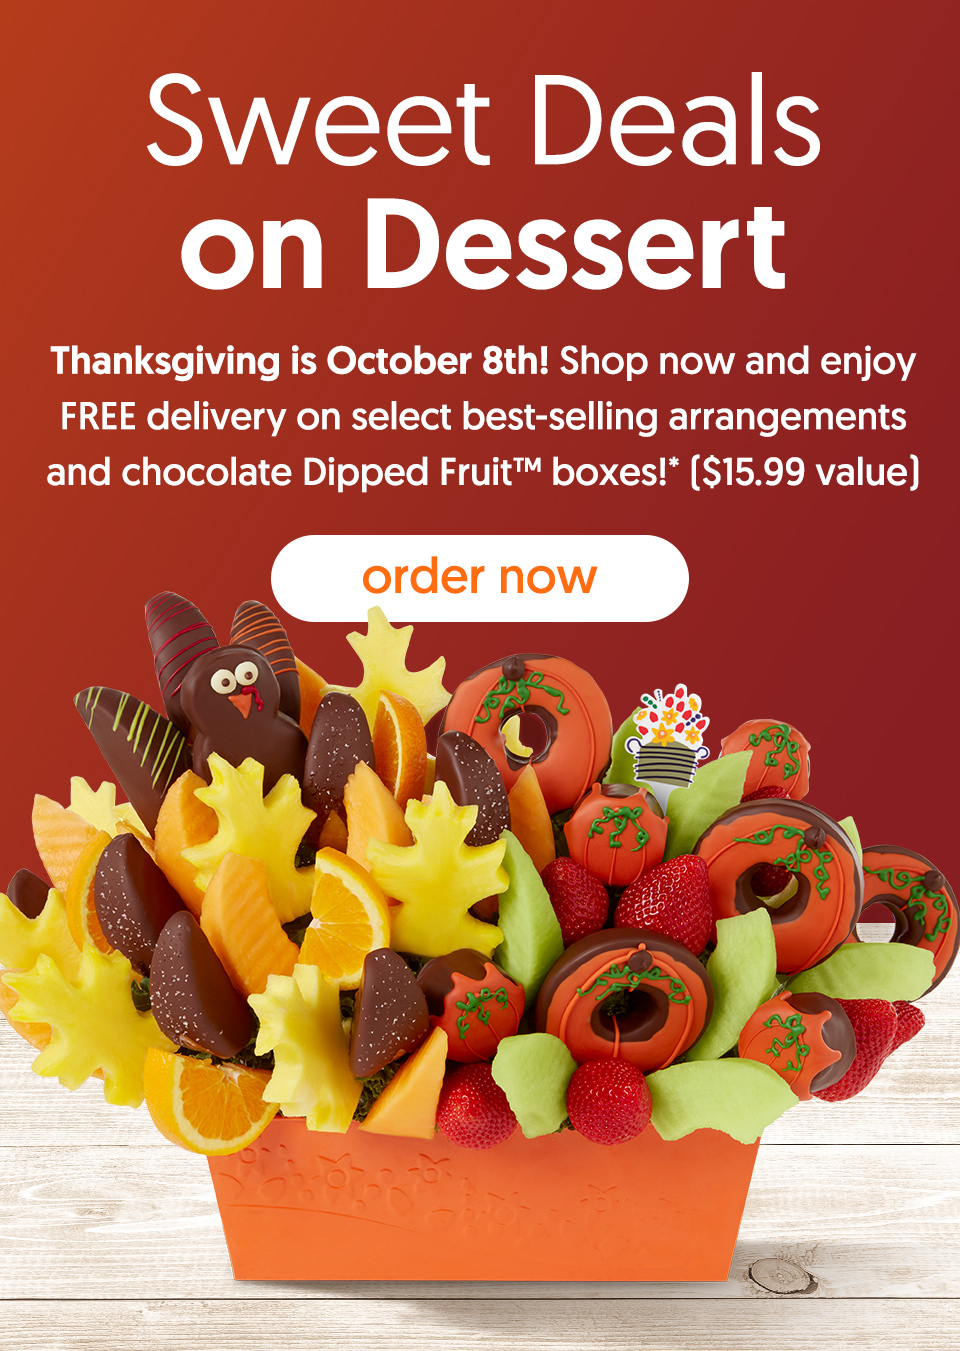 Enjoy FREE delivery on select best-sellers! - order now